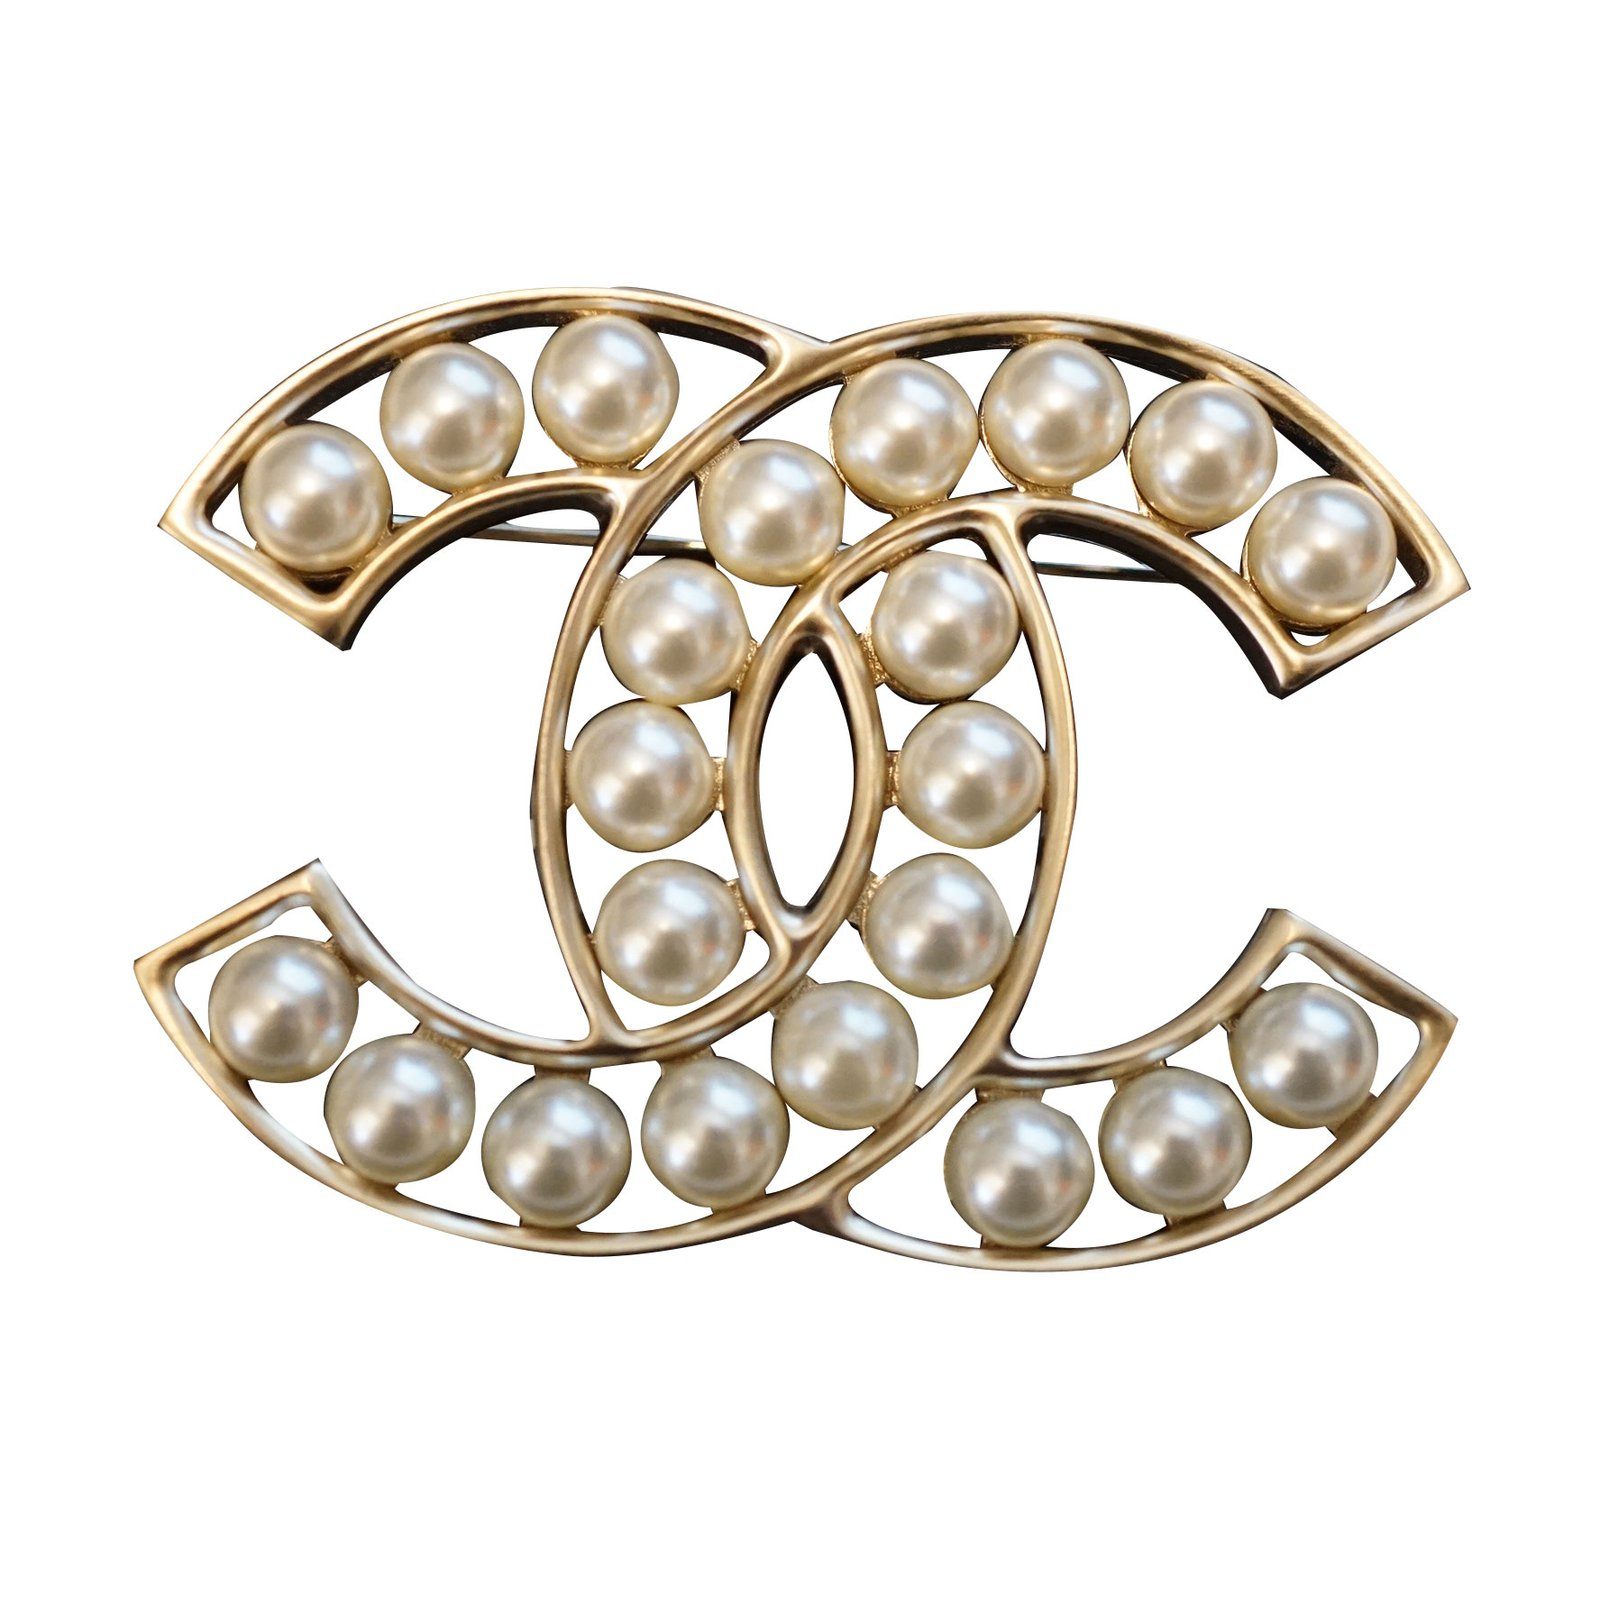 accessories chanel aspirational igigiadditions pin coco channel brooch brooches igigi